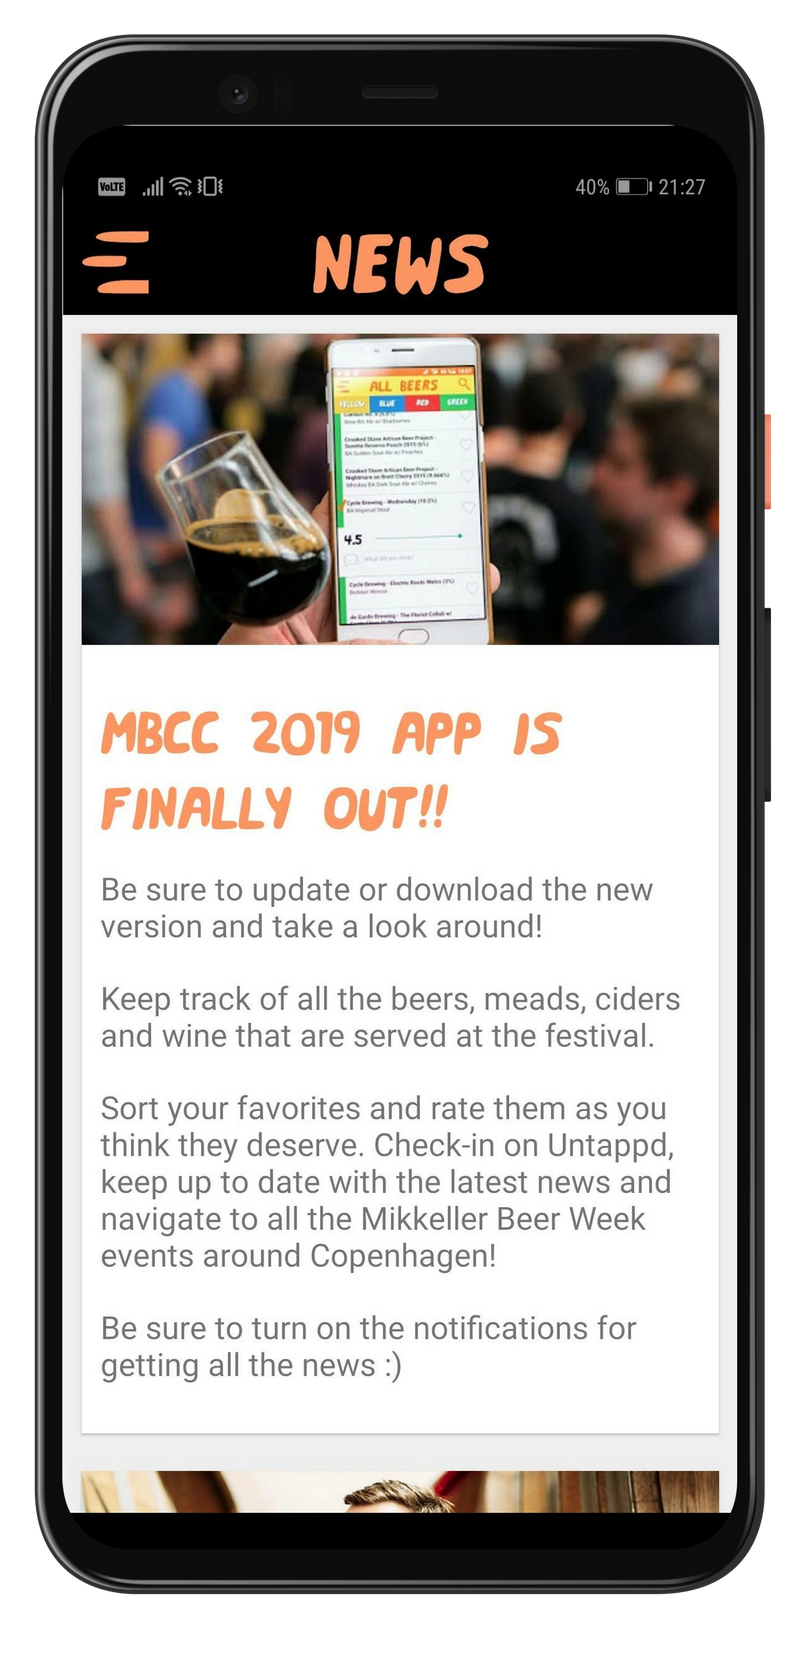 Mobile app showing news feed items